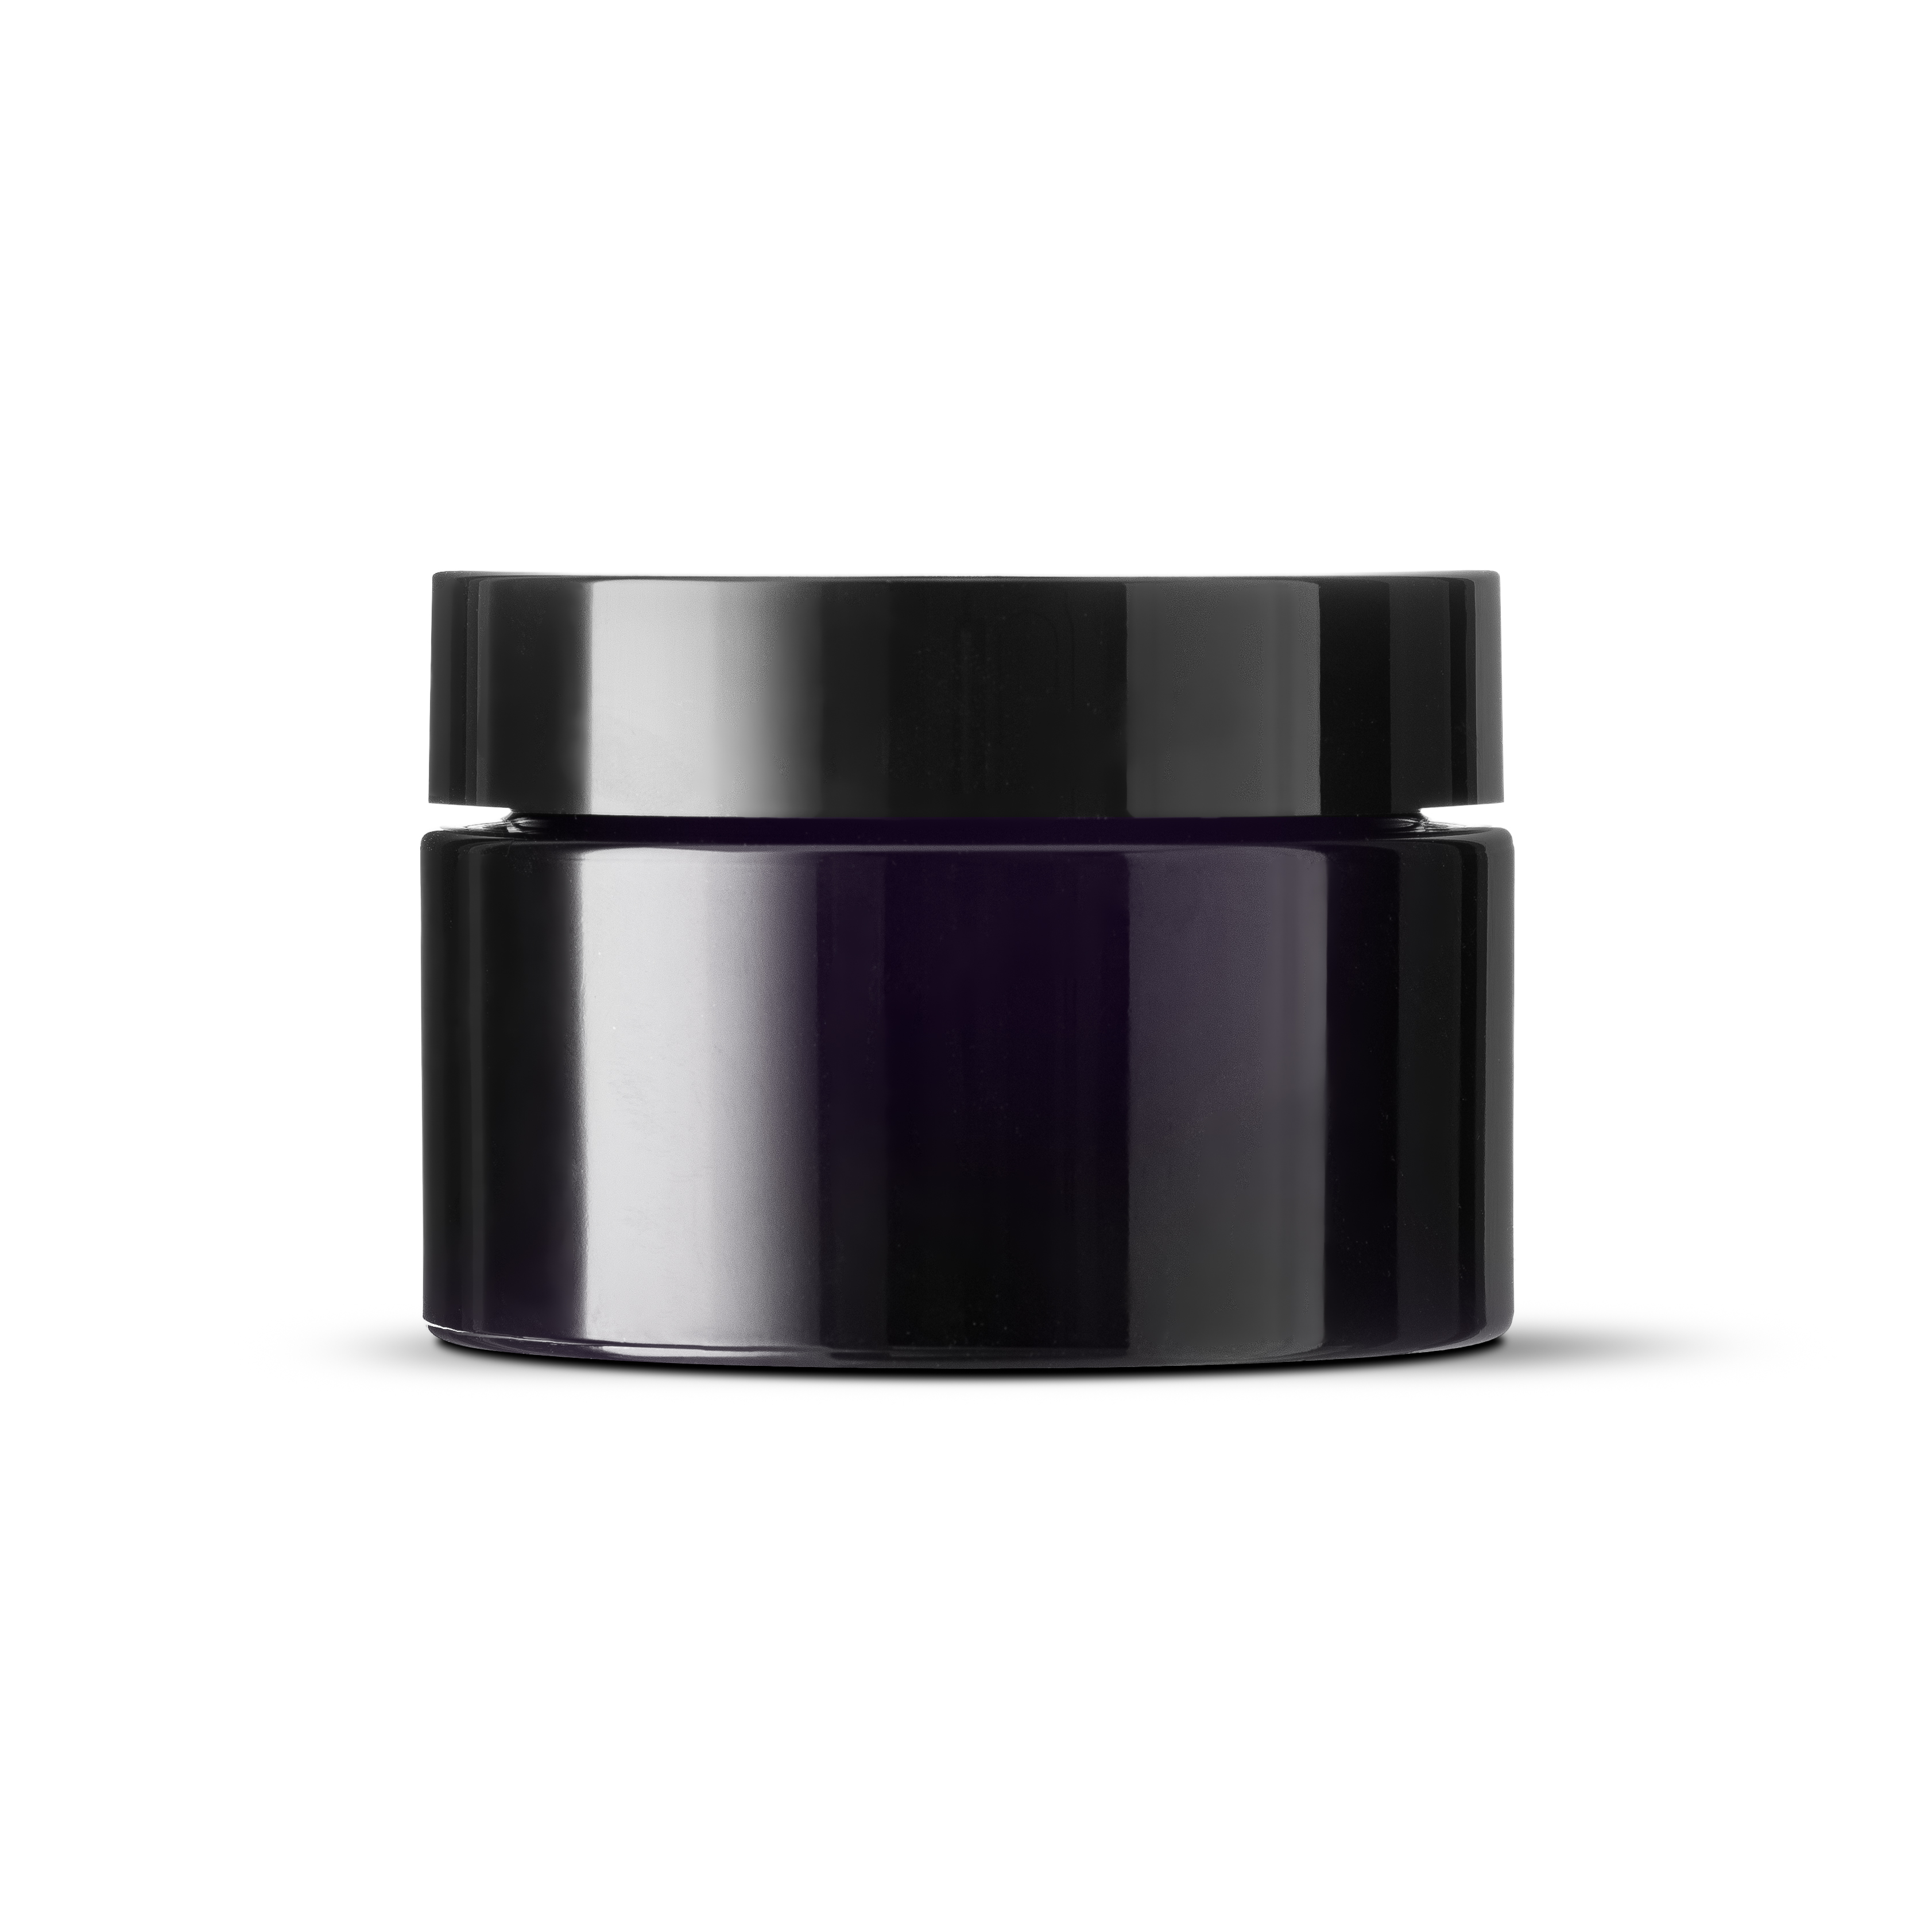 Cosmetic jar Eris 240 ml, 86 special thread, fit for child-resistant lid, Miron